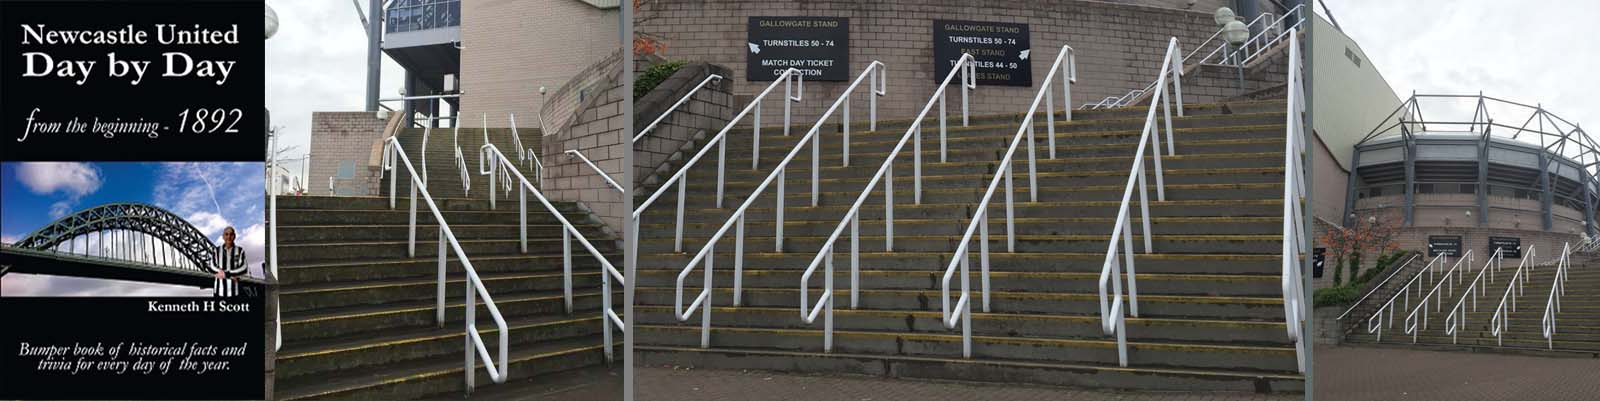 Entrance to Gallowgate and Leazes Stands.